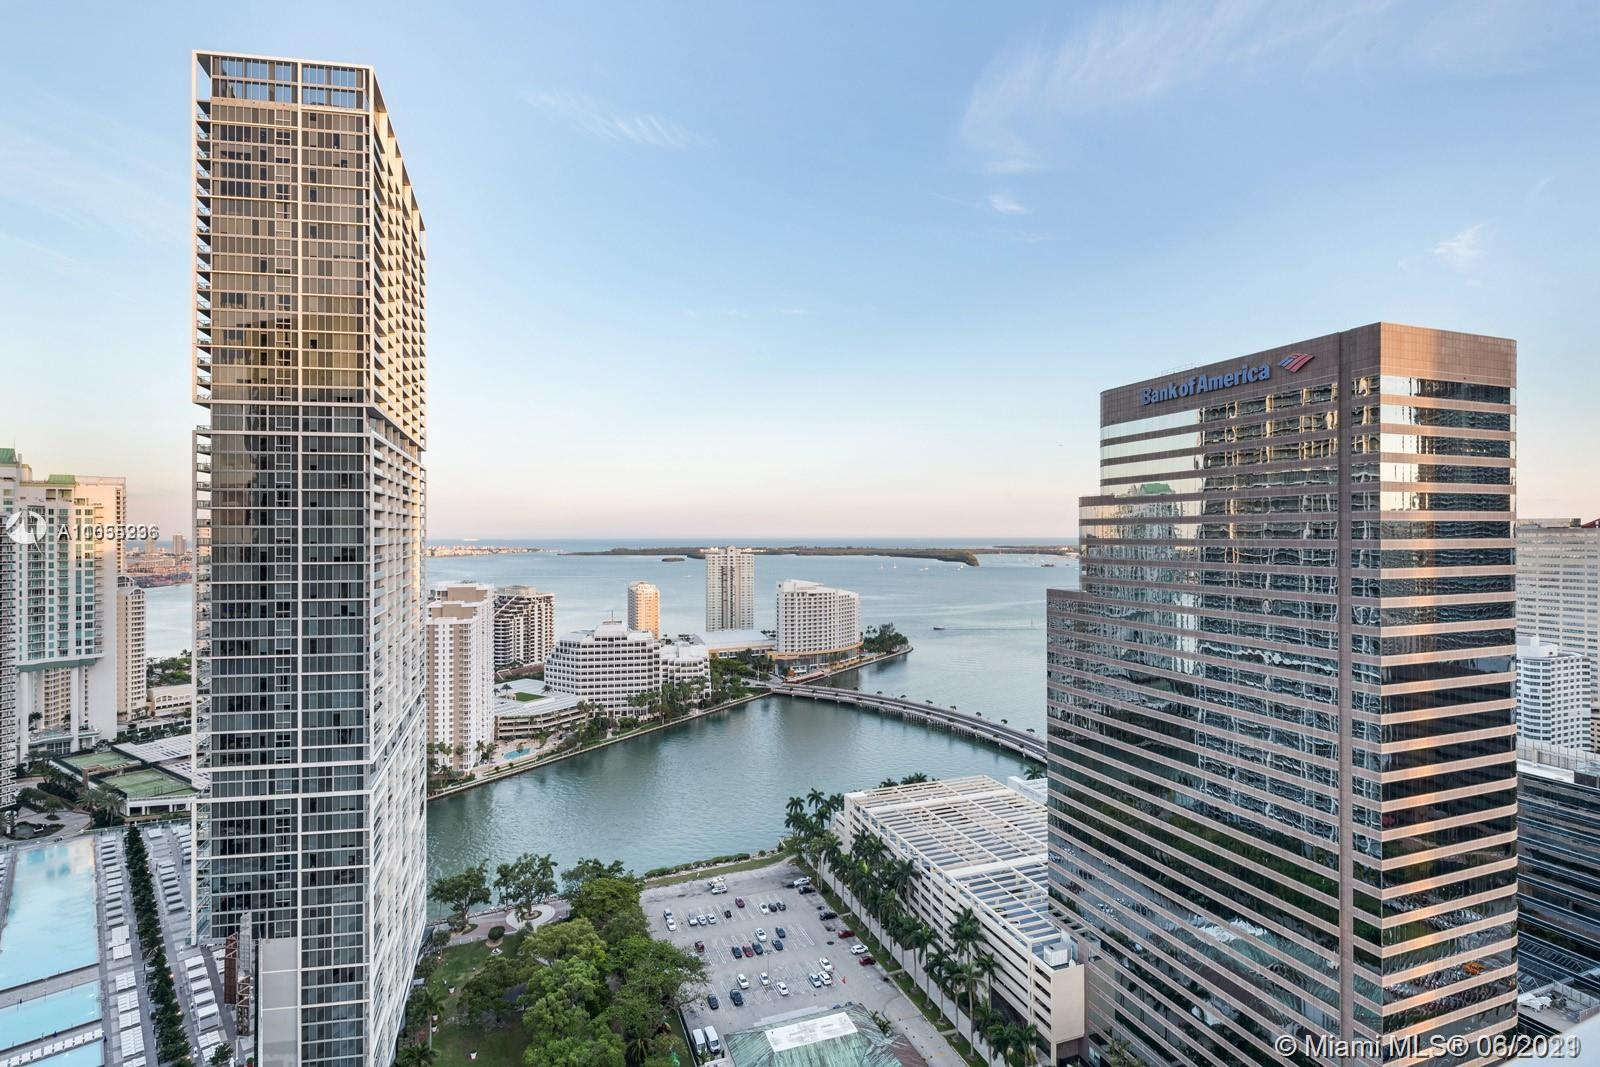 Elegantly appointed 3 bedroom 3 bath apartment available for sale at 500 Brickell in the heart of the Brickell area. Unit 3701  features refinished wood floors throughout, white quartz countertops, stainless steel appliances, and oversized terrace with stunning views of Biscayne Bay. Very spacious apartment with each bedroom having a walk in closet and access to it's own bathroom. Enjoy all of 500 Brickell's luxury amenities including rooftop heated pool, 24 hour concierge service, spa equipped with sauna and steam room, private movie theater, state of the art fitness center, and more. Walking distance to the shops of Brickell City Center and the Miami River. Please note unit is tenant occupied. Contact listing agent for showing instructions.